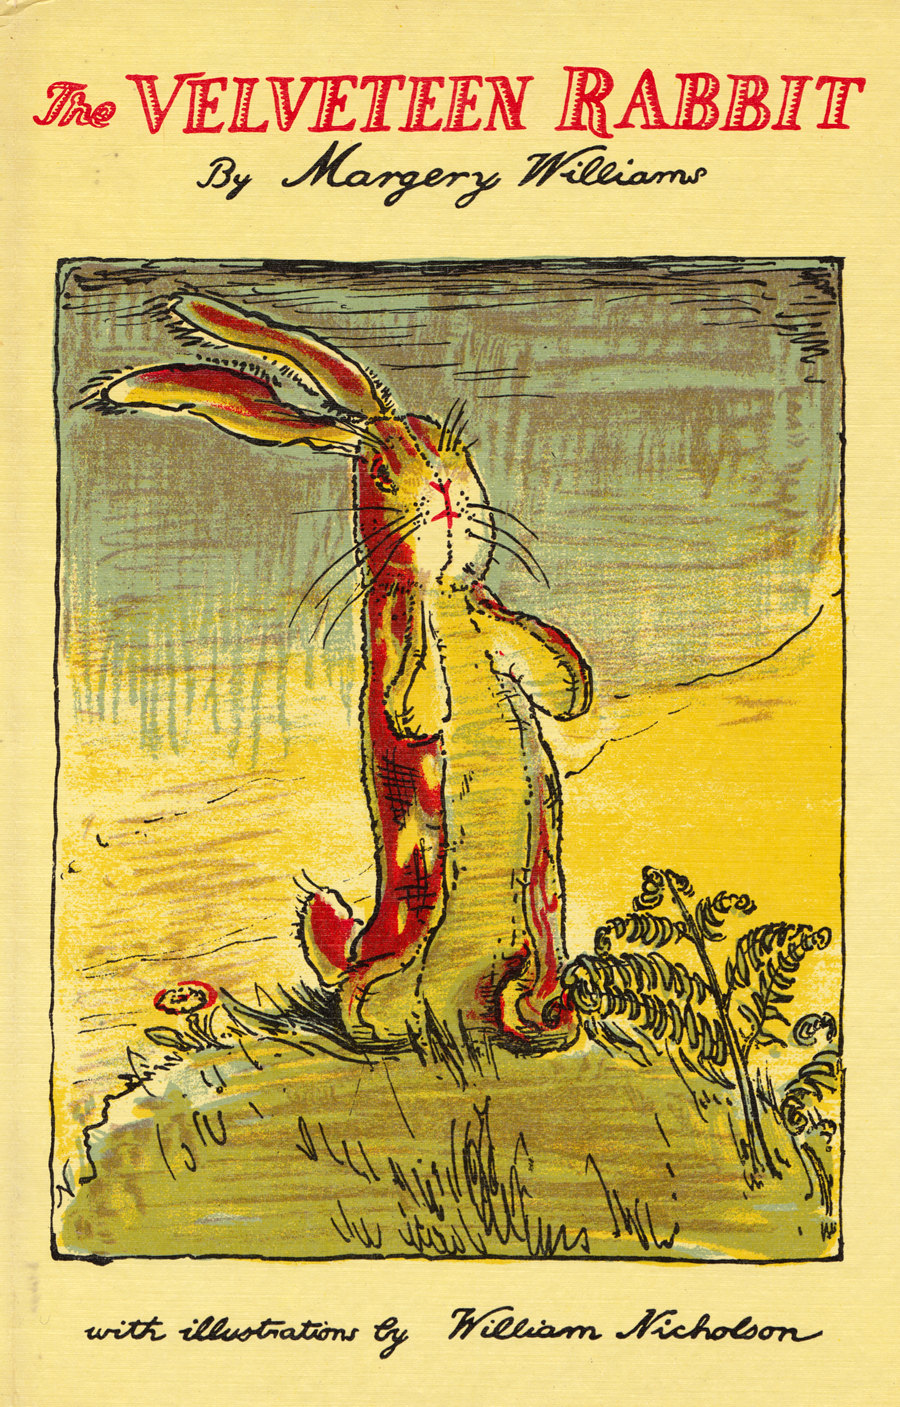 velveteen rabbit There was once a velveteen rabbit, and in the beginning he was really splendid he was fat and bunchy, as a rabbit should be his coat was spotted brown and white, he had real thread whiskers, and his ears were lined with pink sateen.